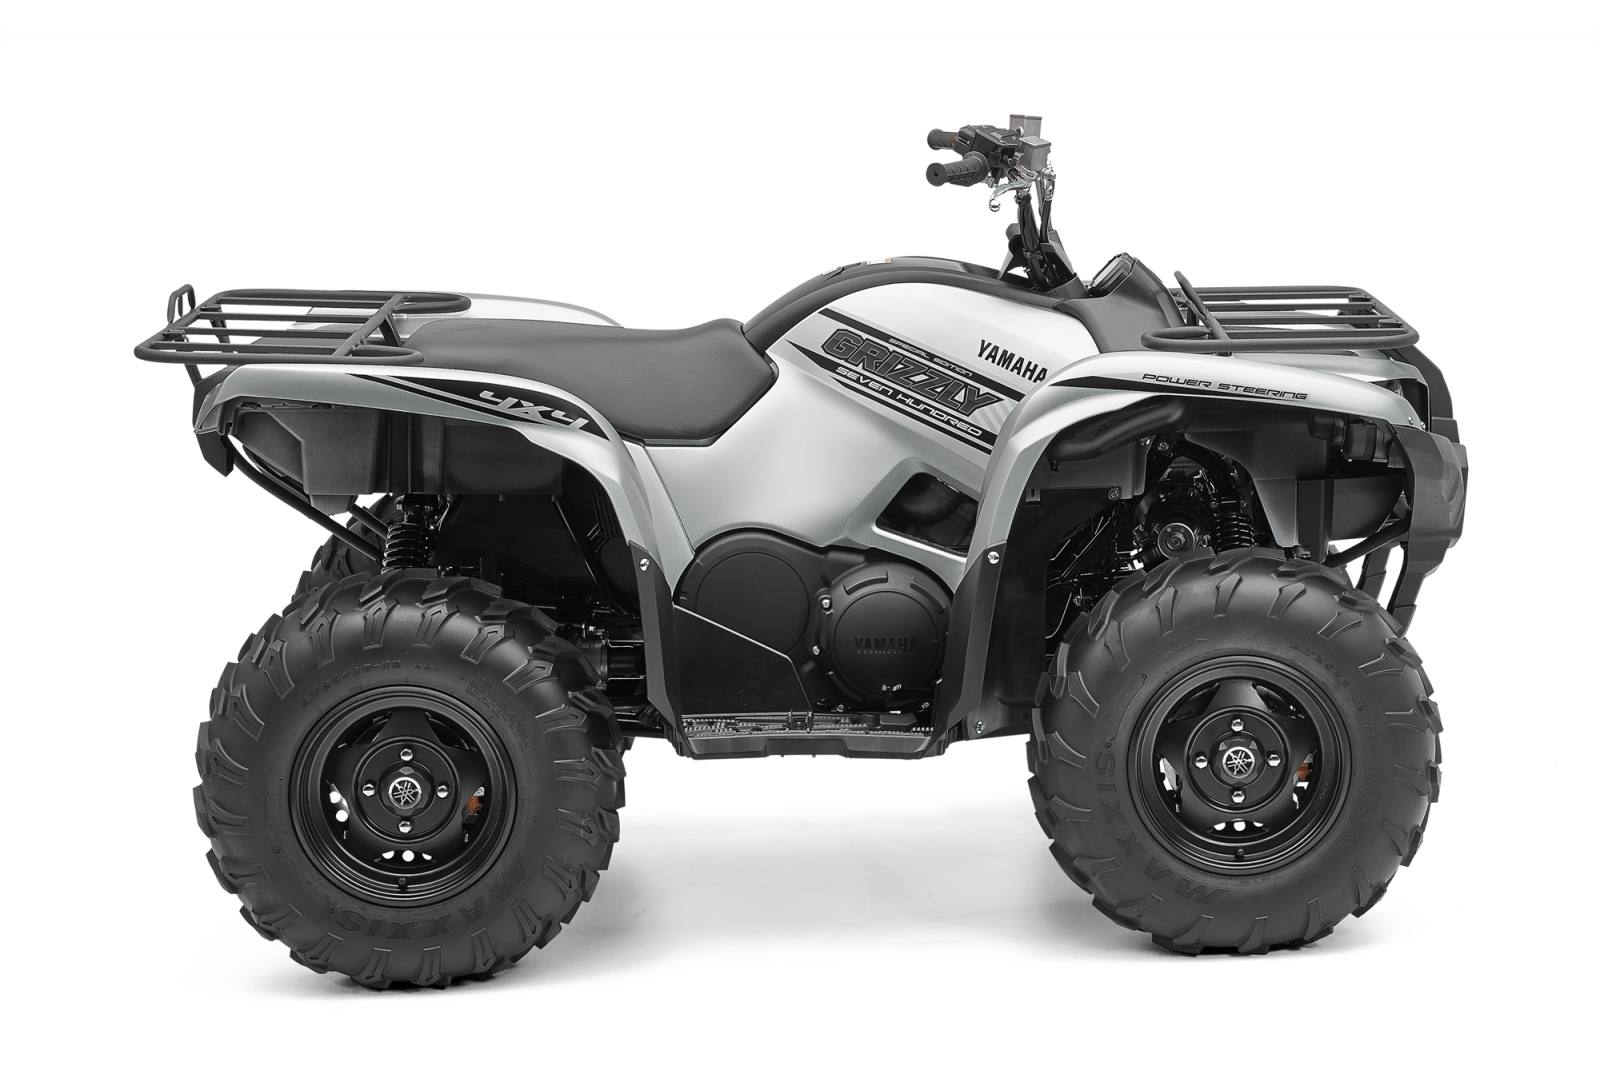 2015 Yamaha Grizzly 700 FI Auto. 4x4 EPS Specia, motorcycle listing